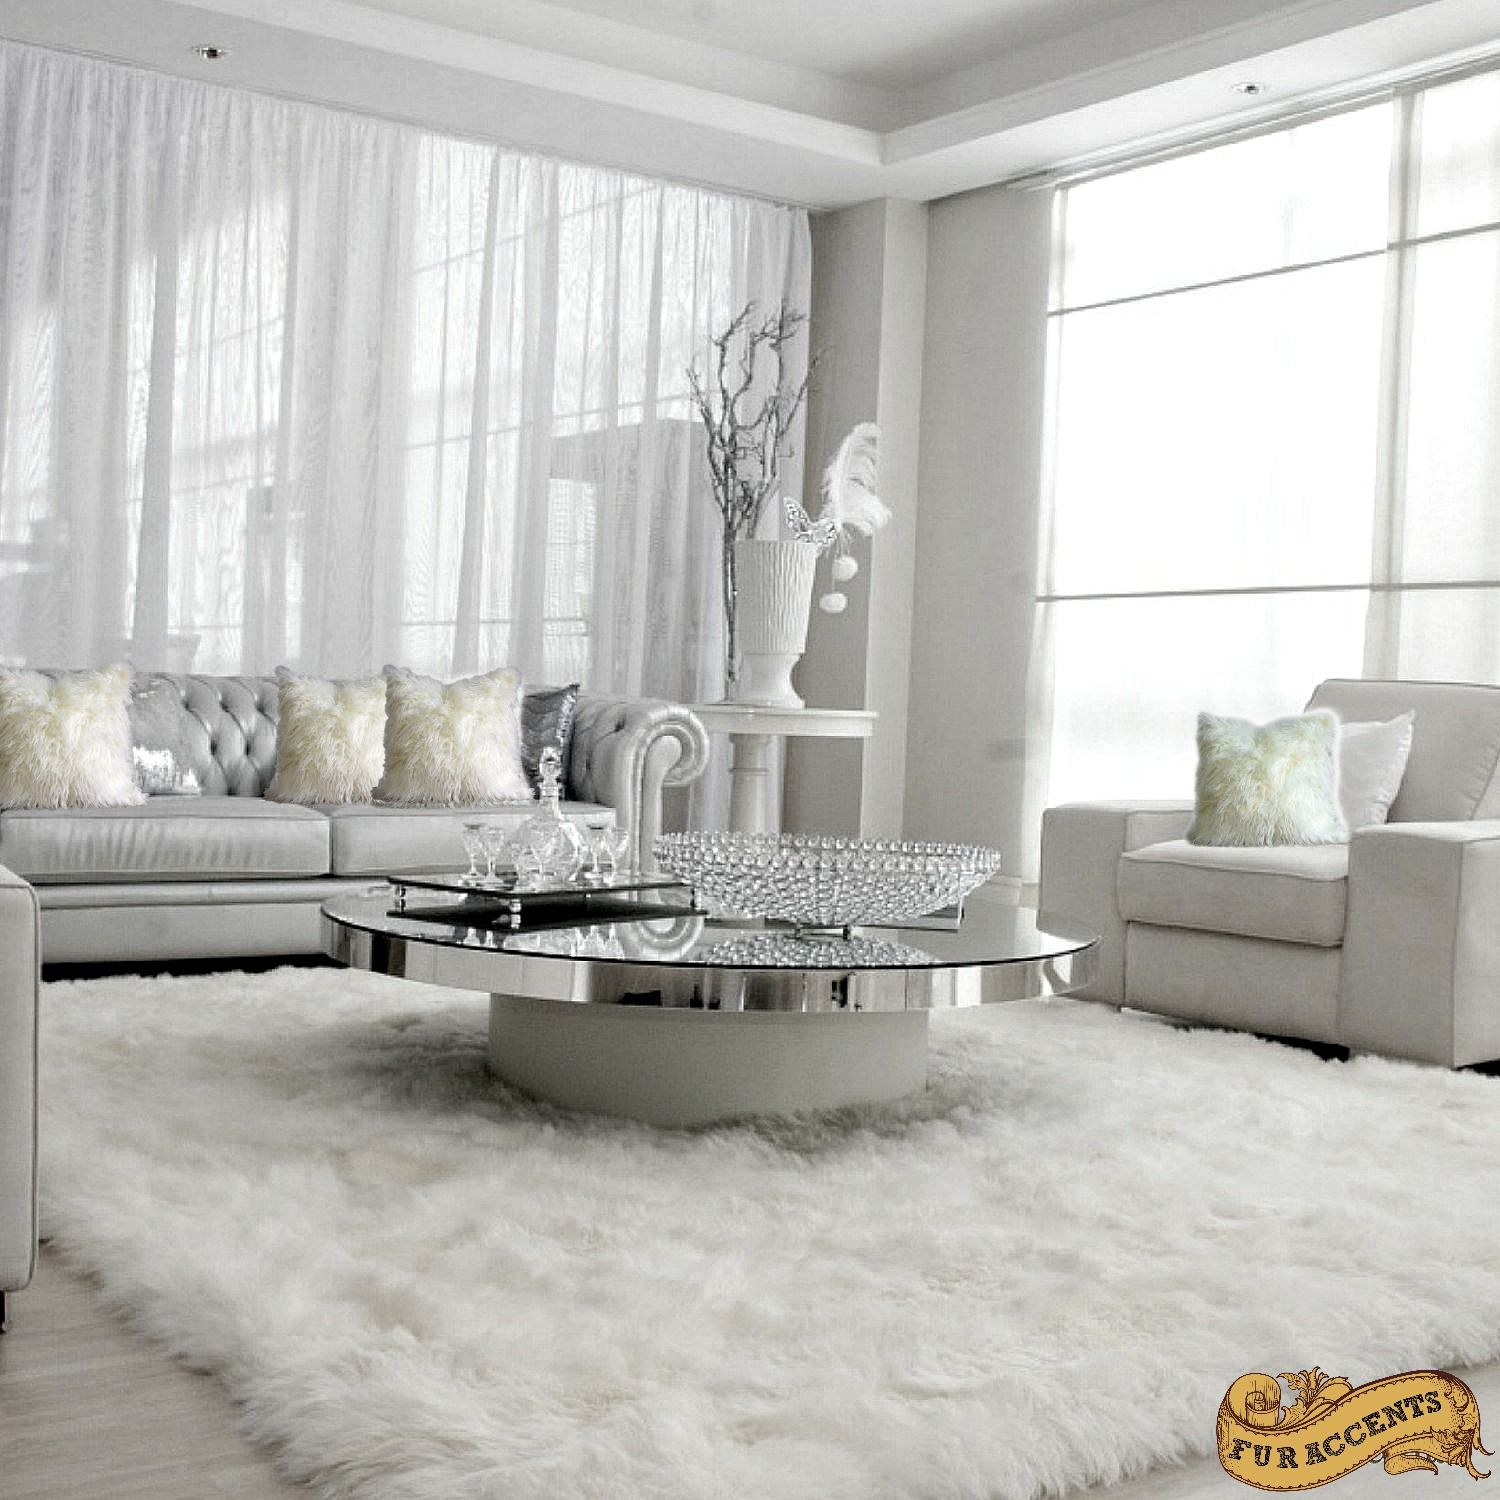 Pin On Extraordinary Rugs And Throws By Fur Accents #soft #area #rugs #for #living #room